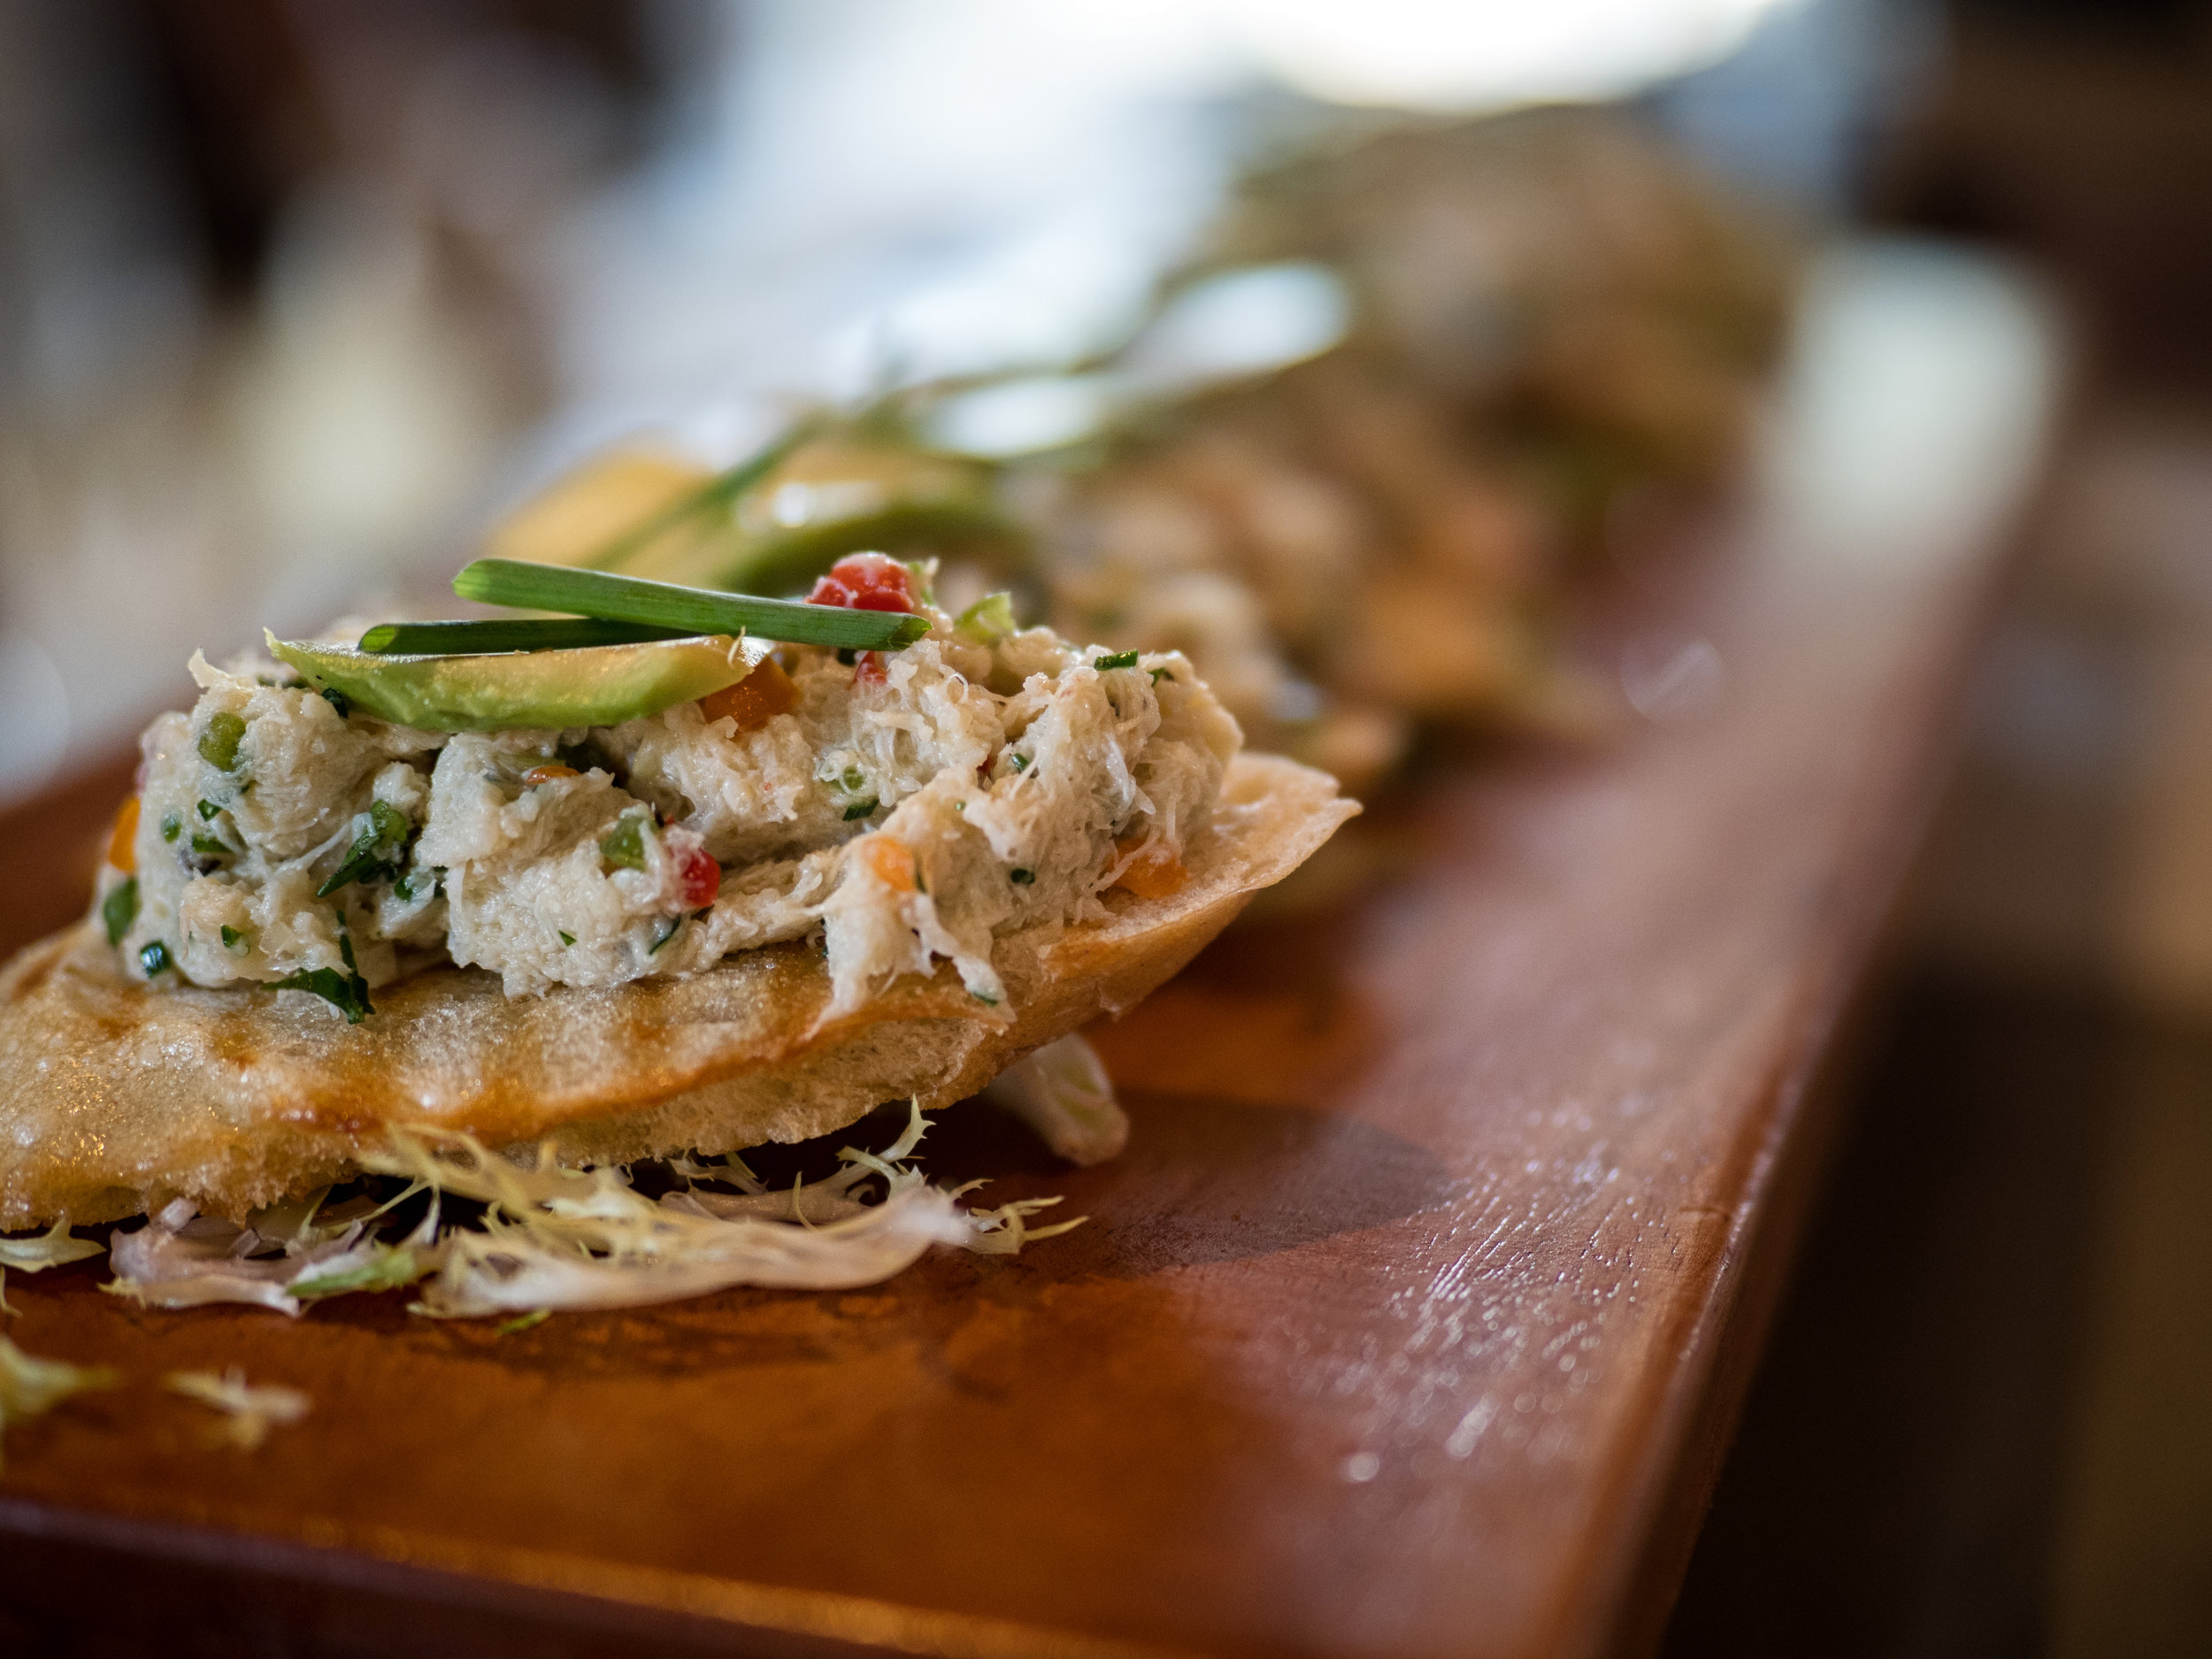 Musings by the Glass - Tips for Pairing Wine and Seafood - Lump Crab with Bell Pepper, Avocado and Brushetta